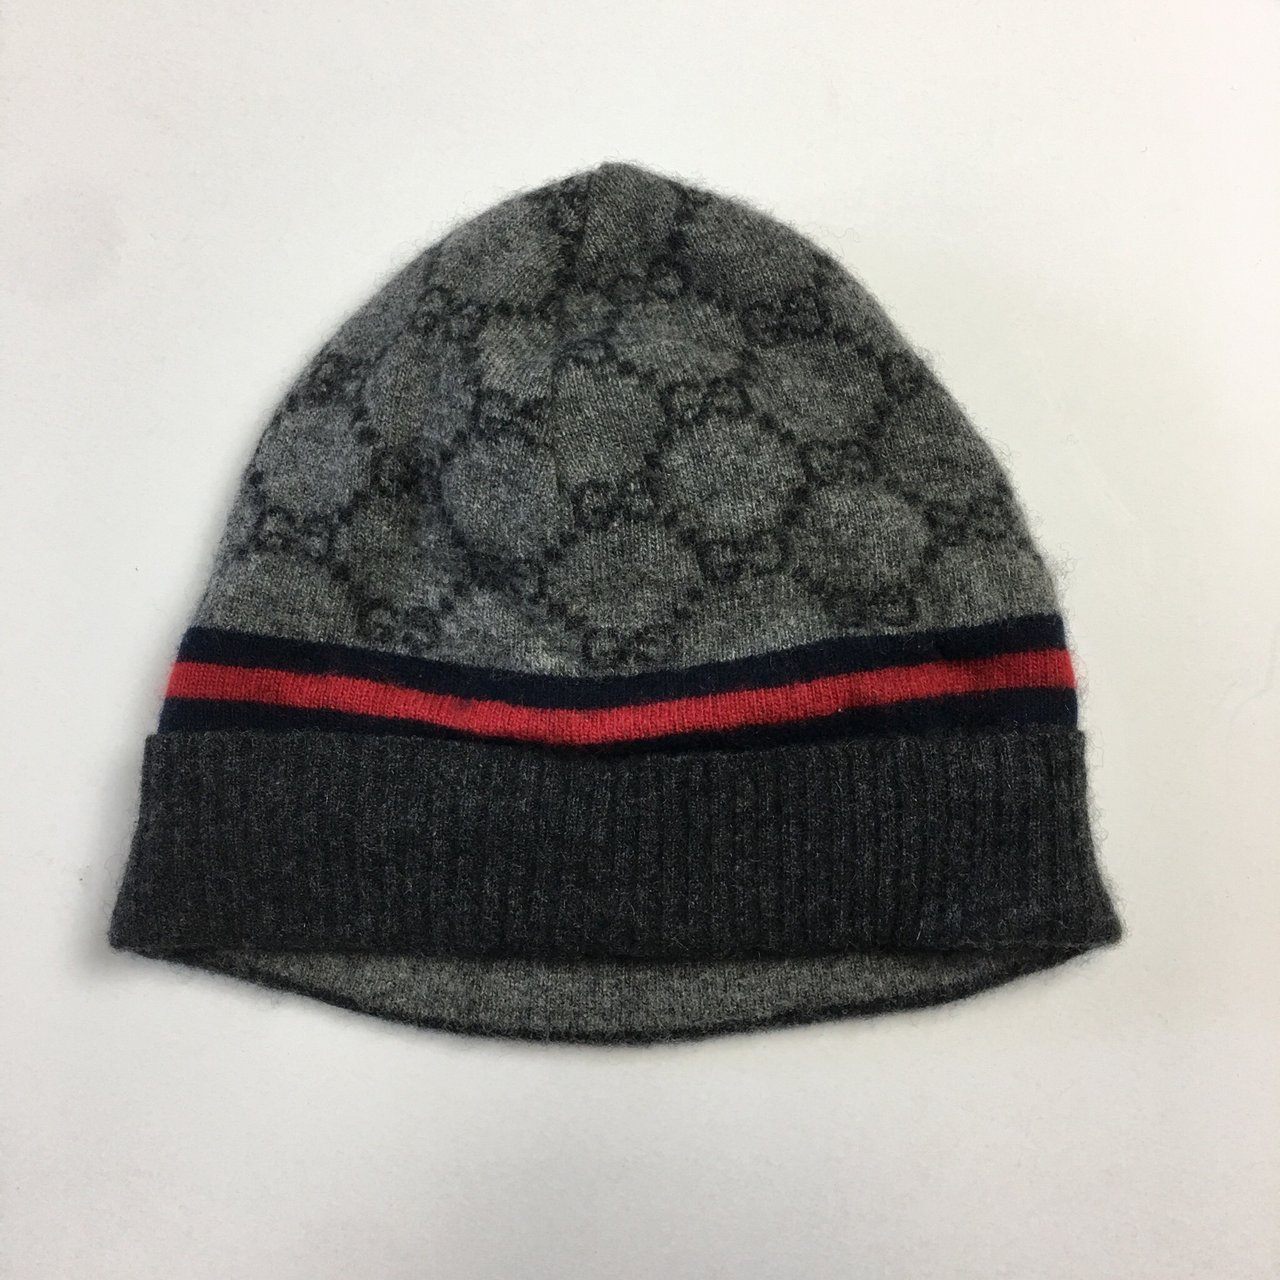 Authentic Gucci Cashmere beanie Very Clean Just a tad - Depop 6e7d3802948